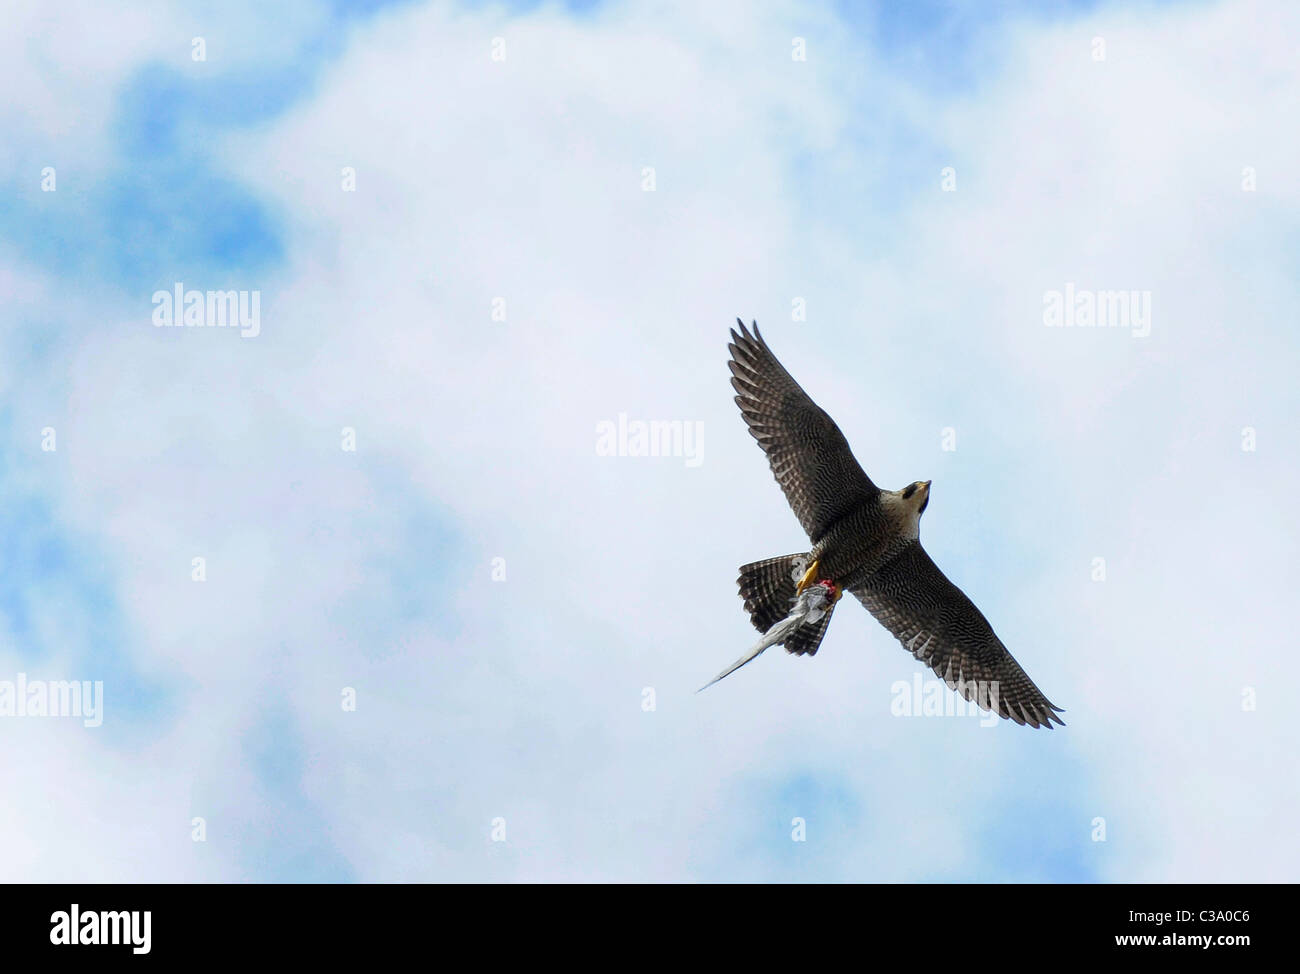 An adult Peregrine Falcon flying with a wing of a bird (Falco peregrinus) - Stock Image